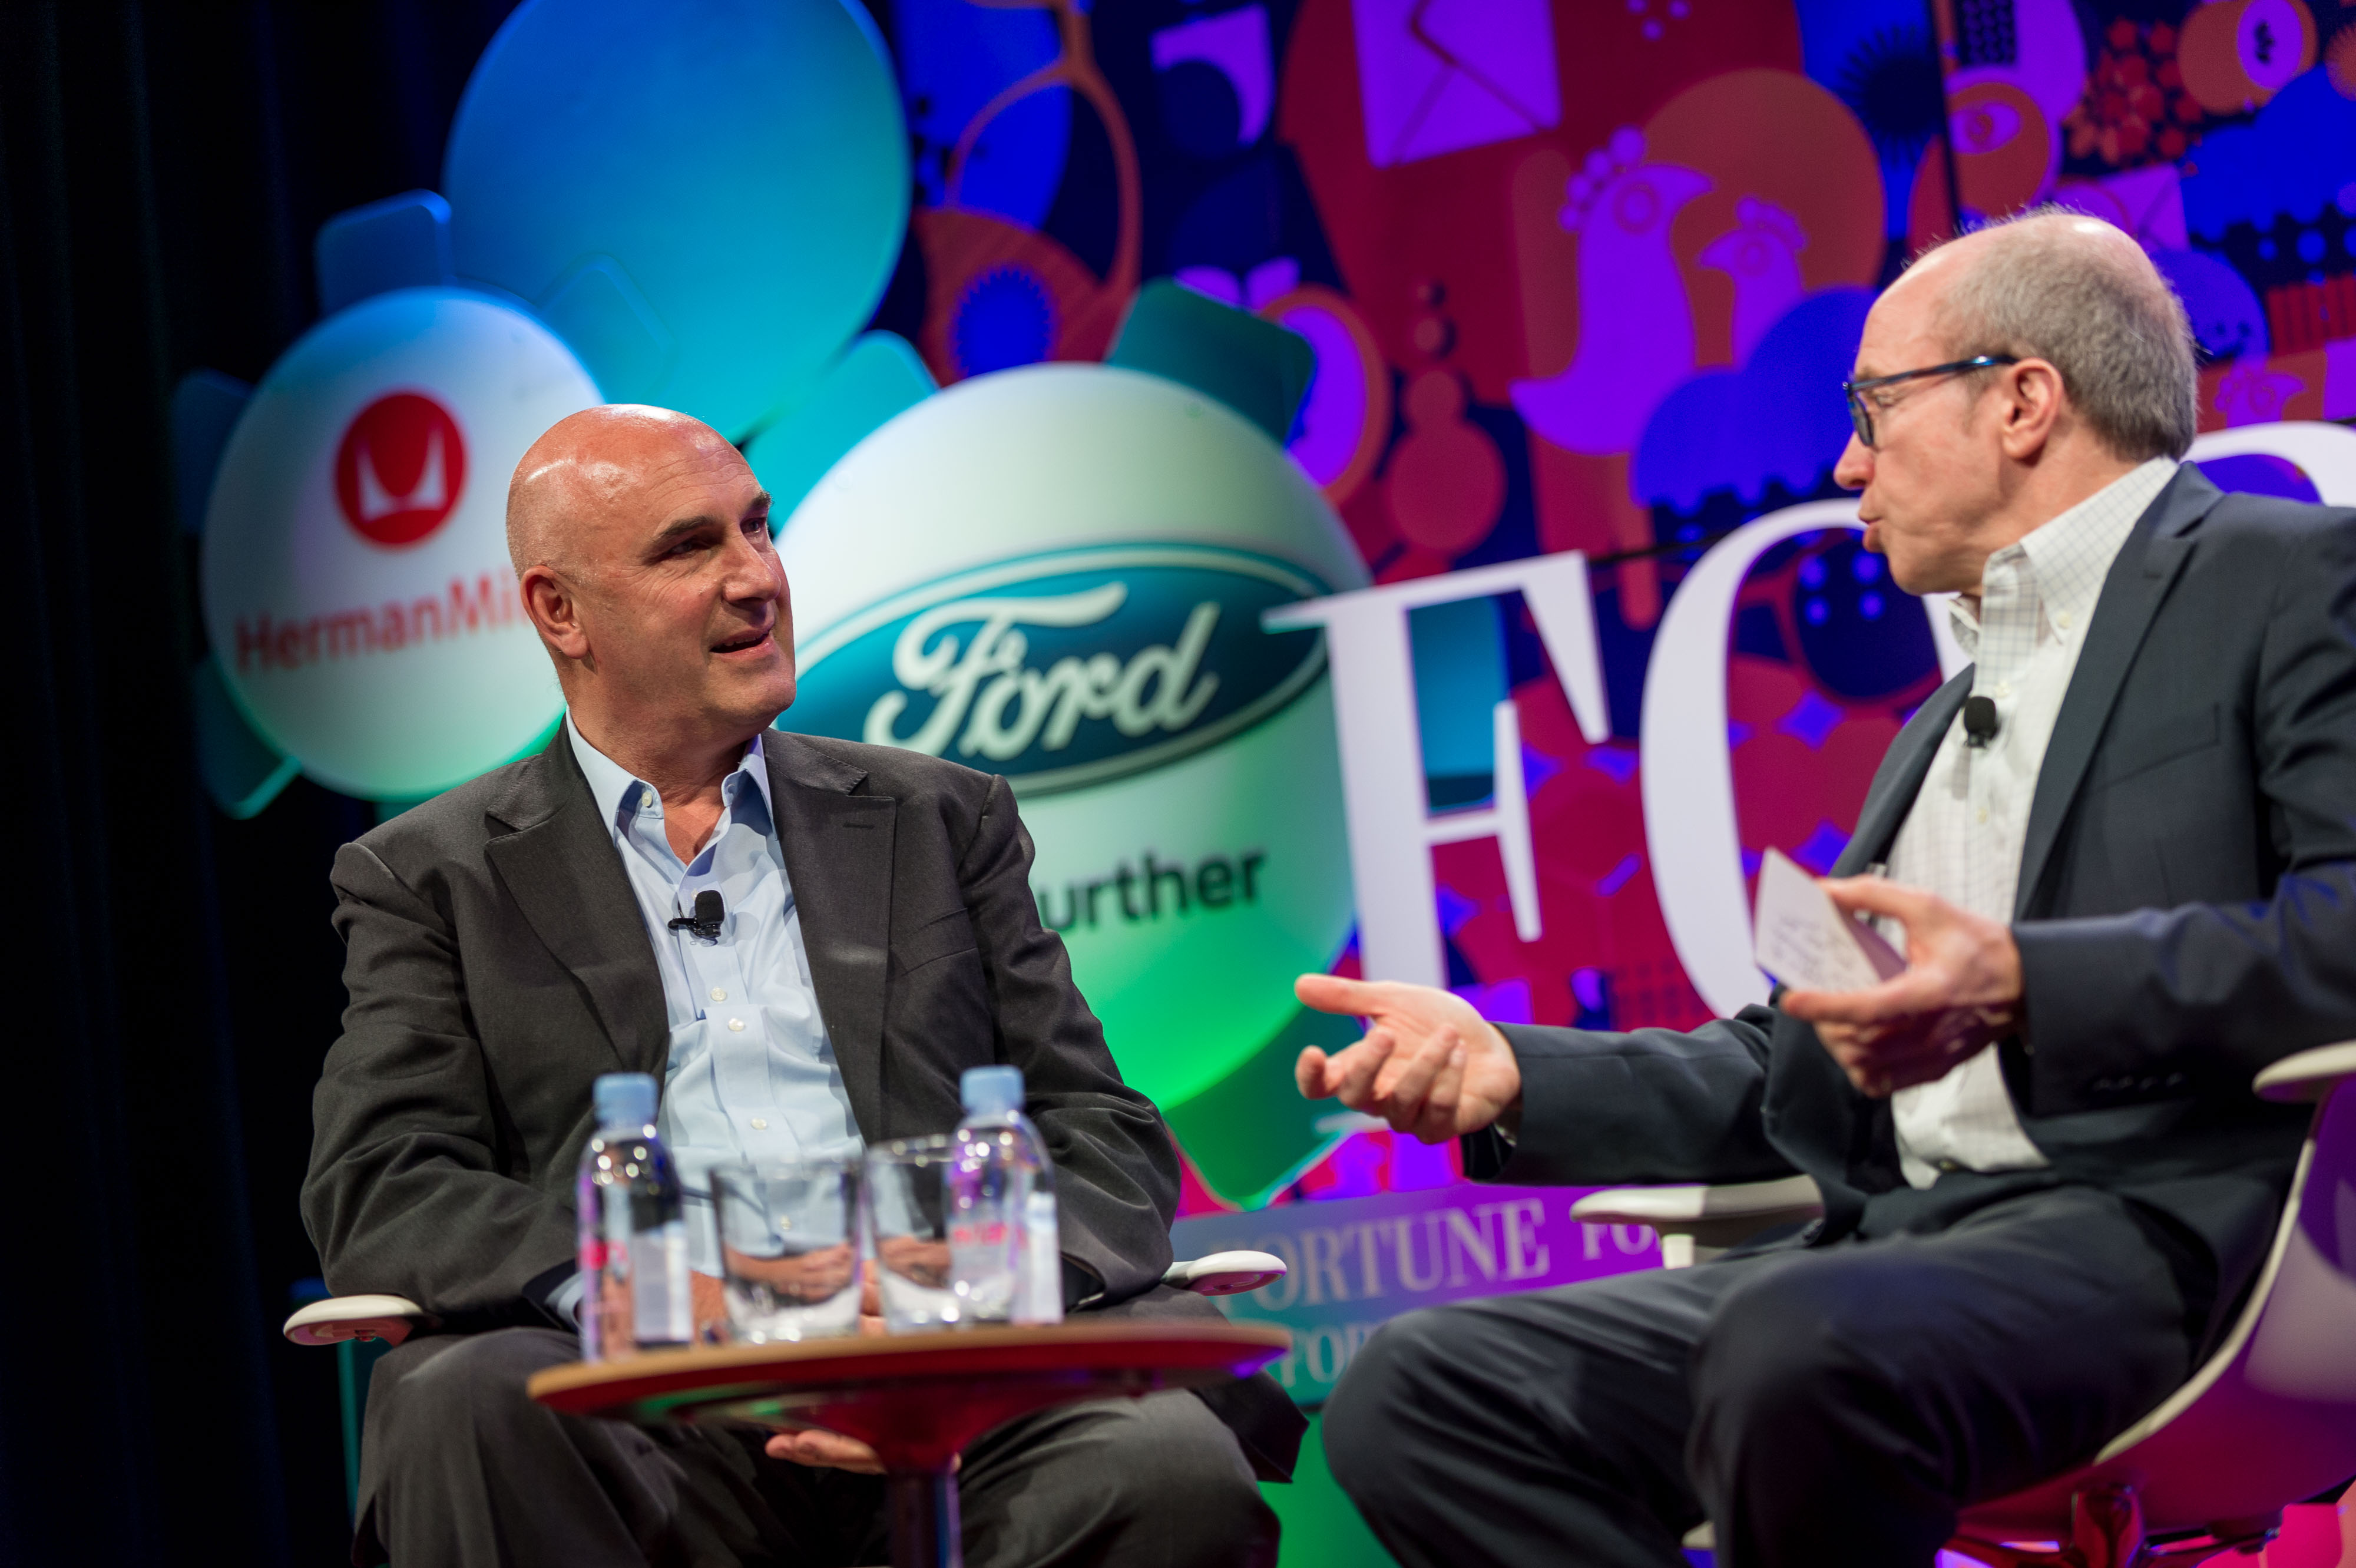 Monsanto CEO Hugh Grant and Fortune editor Alan Murray at Brainstorm E.